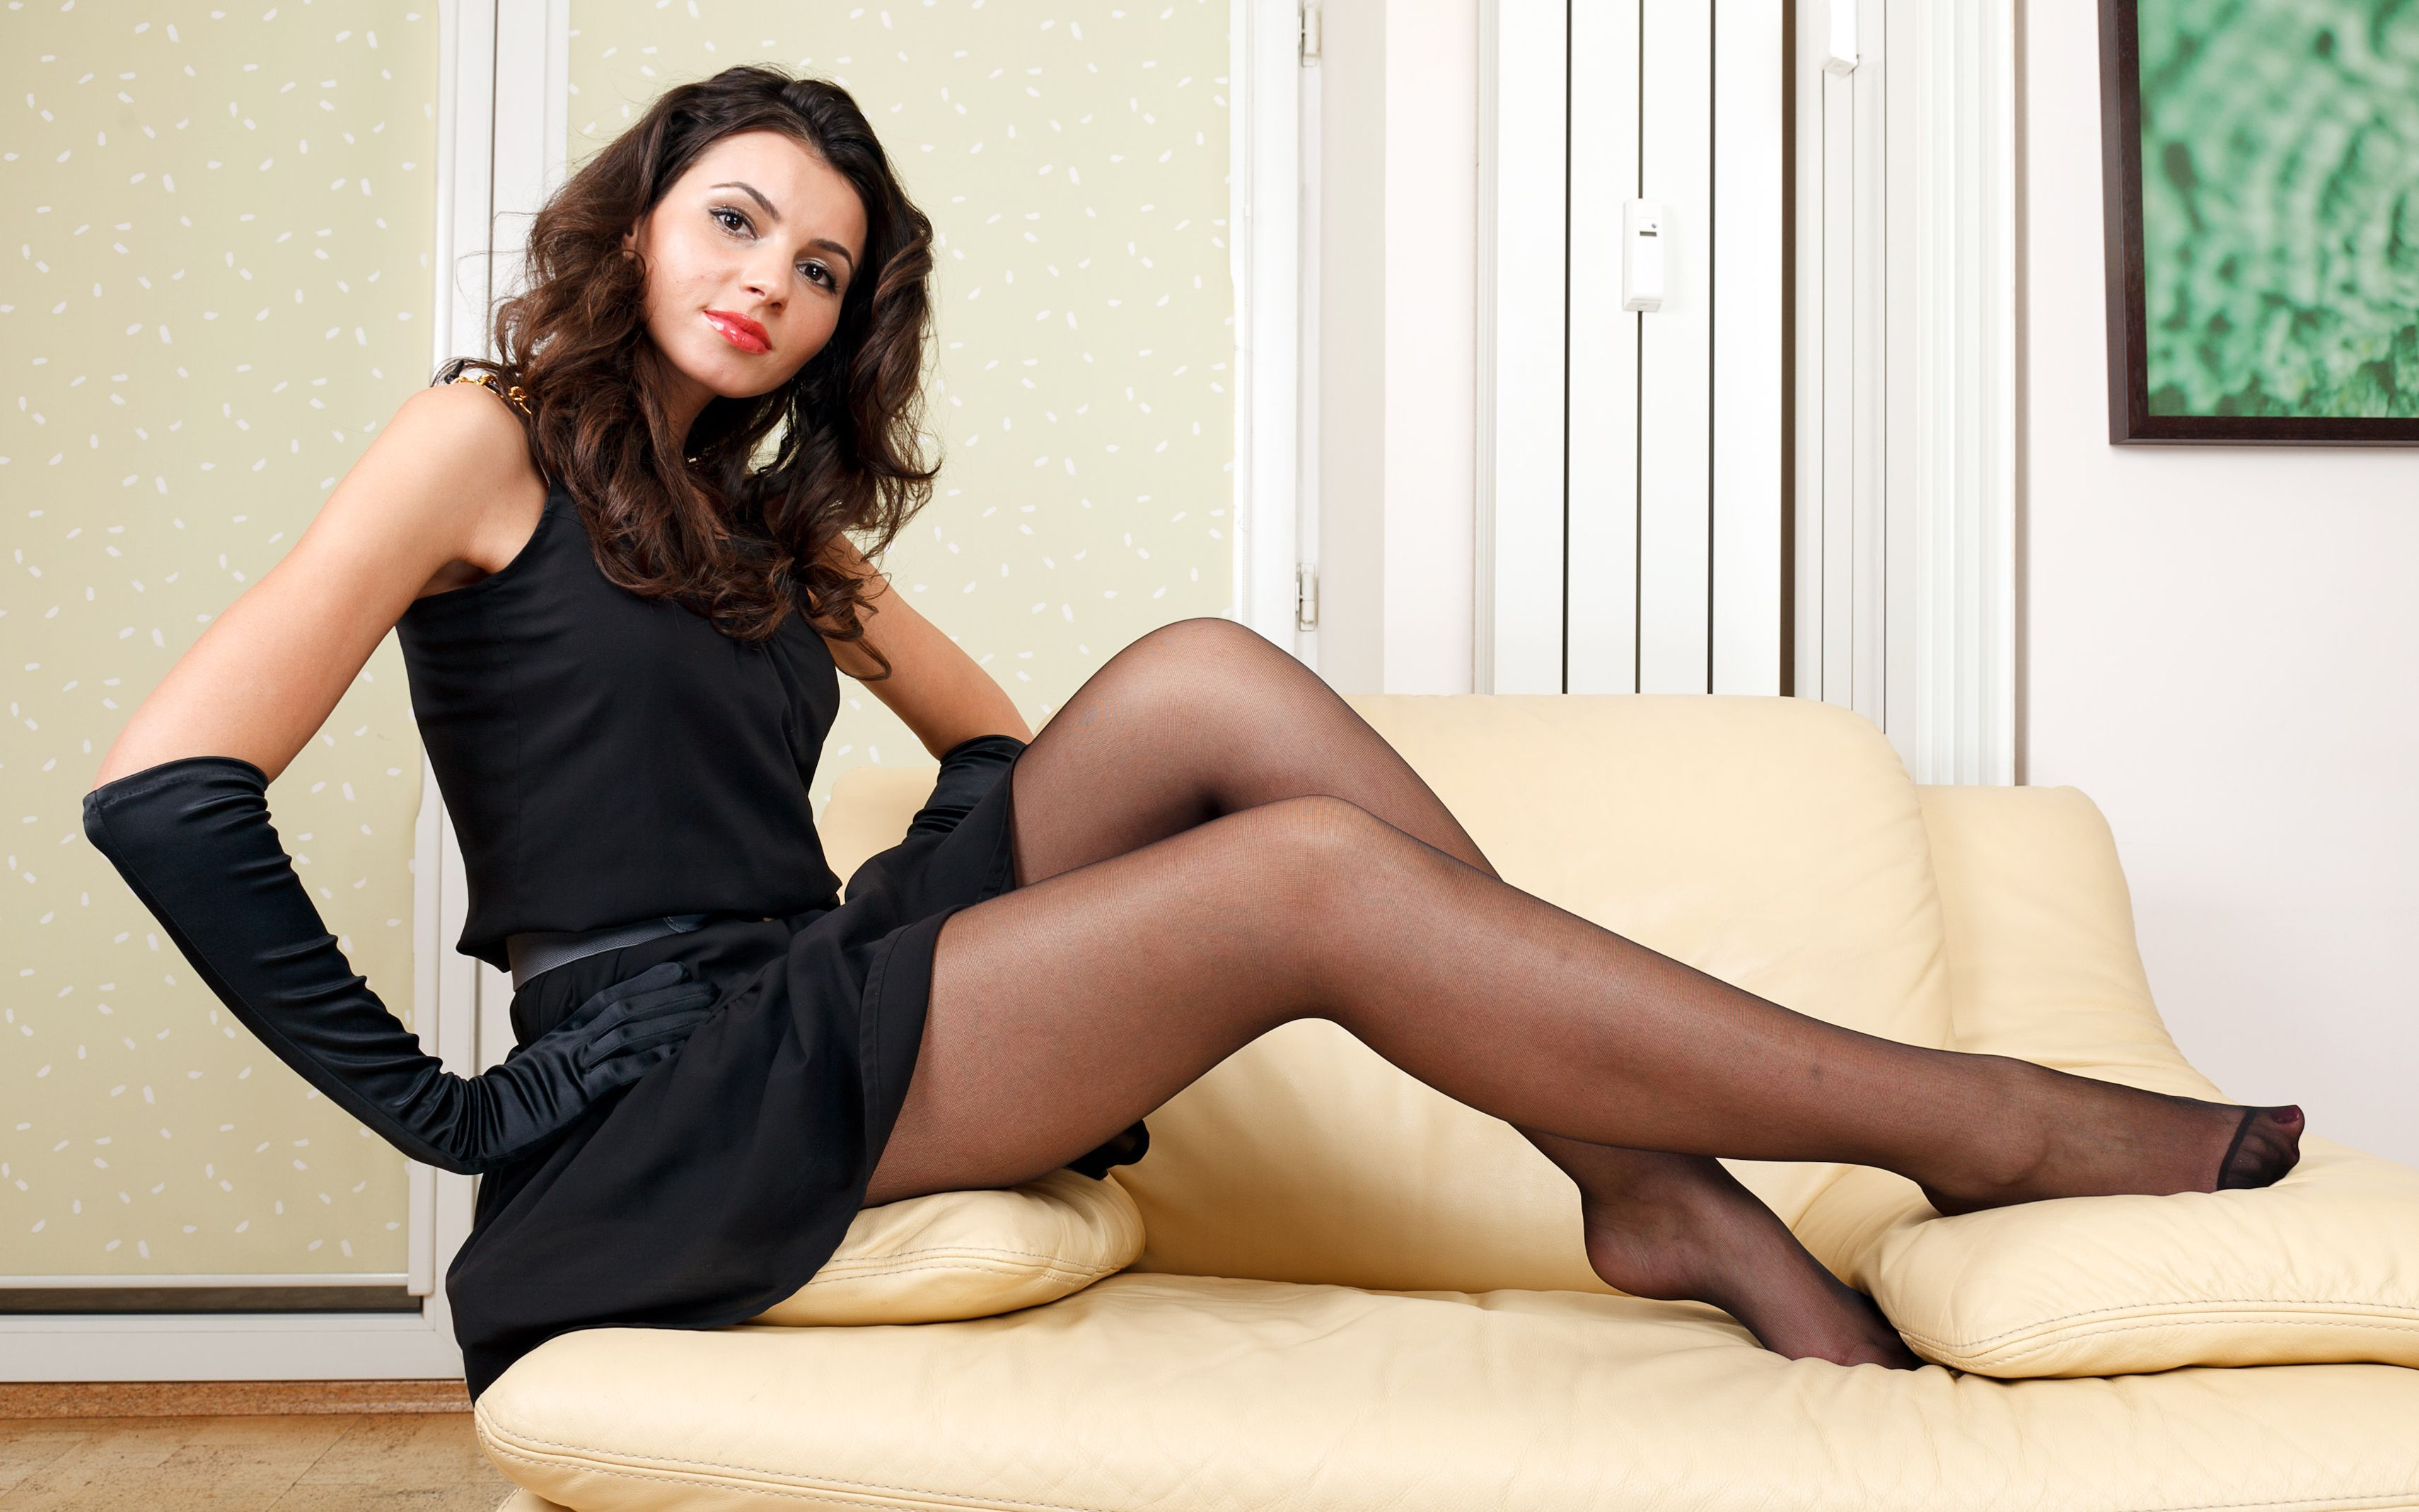 4K Woman Stockings Wallpapers High Quality | Download Free